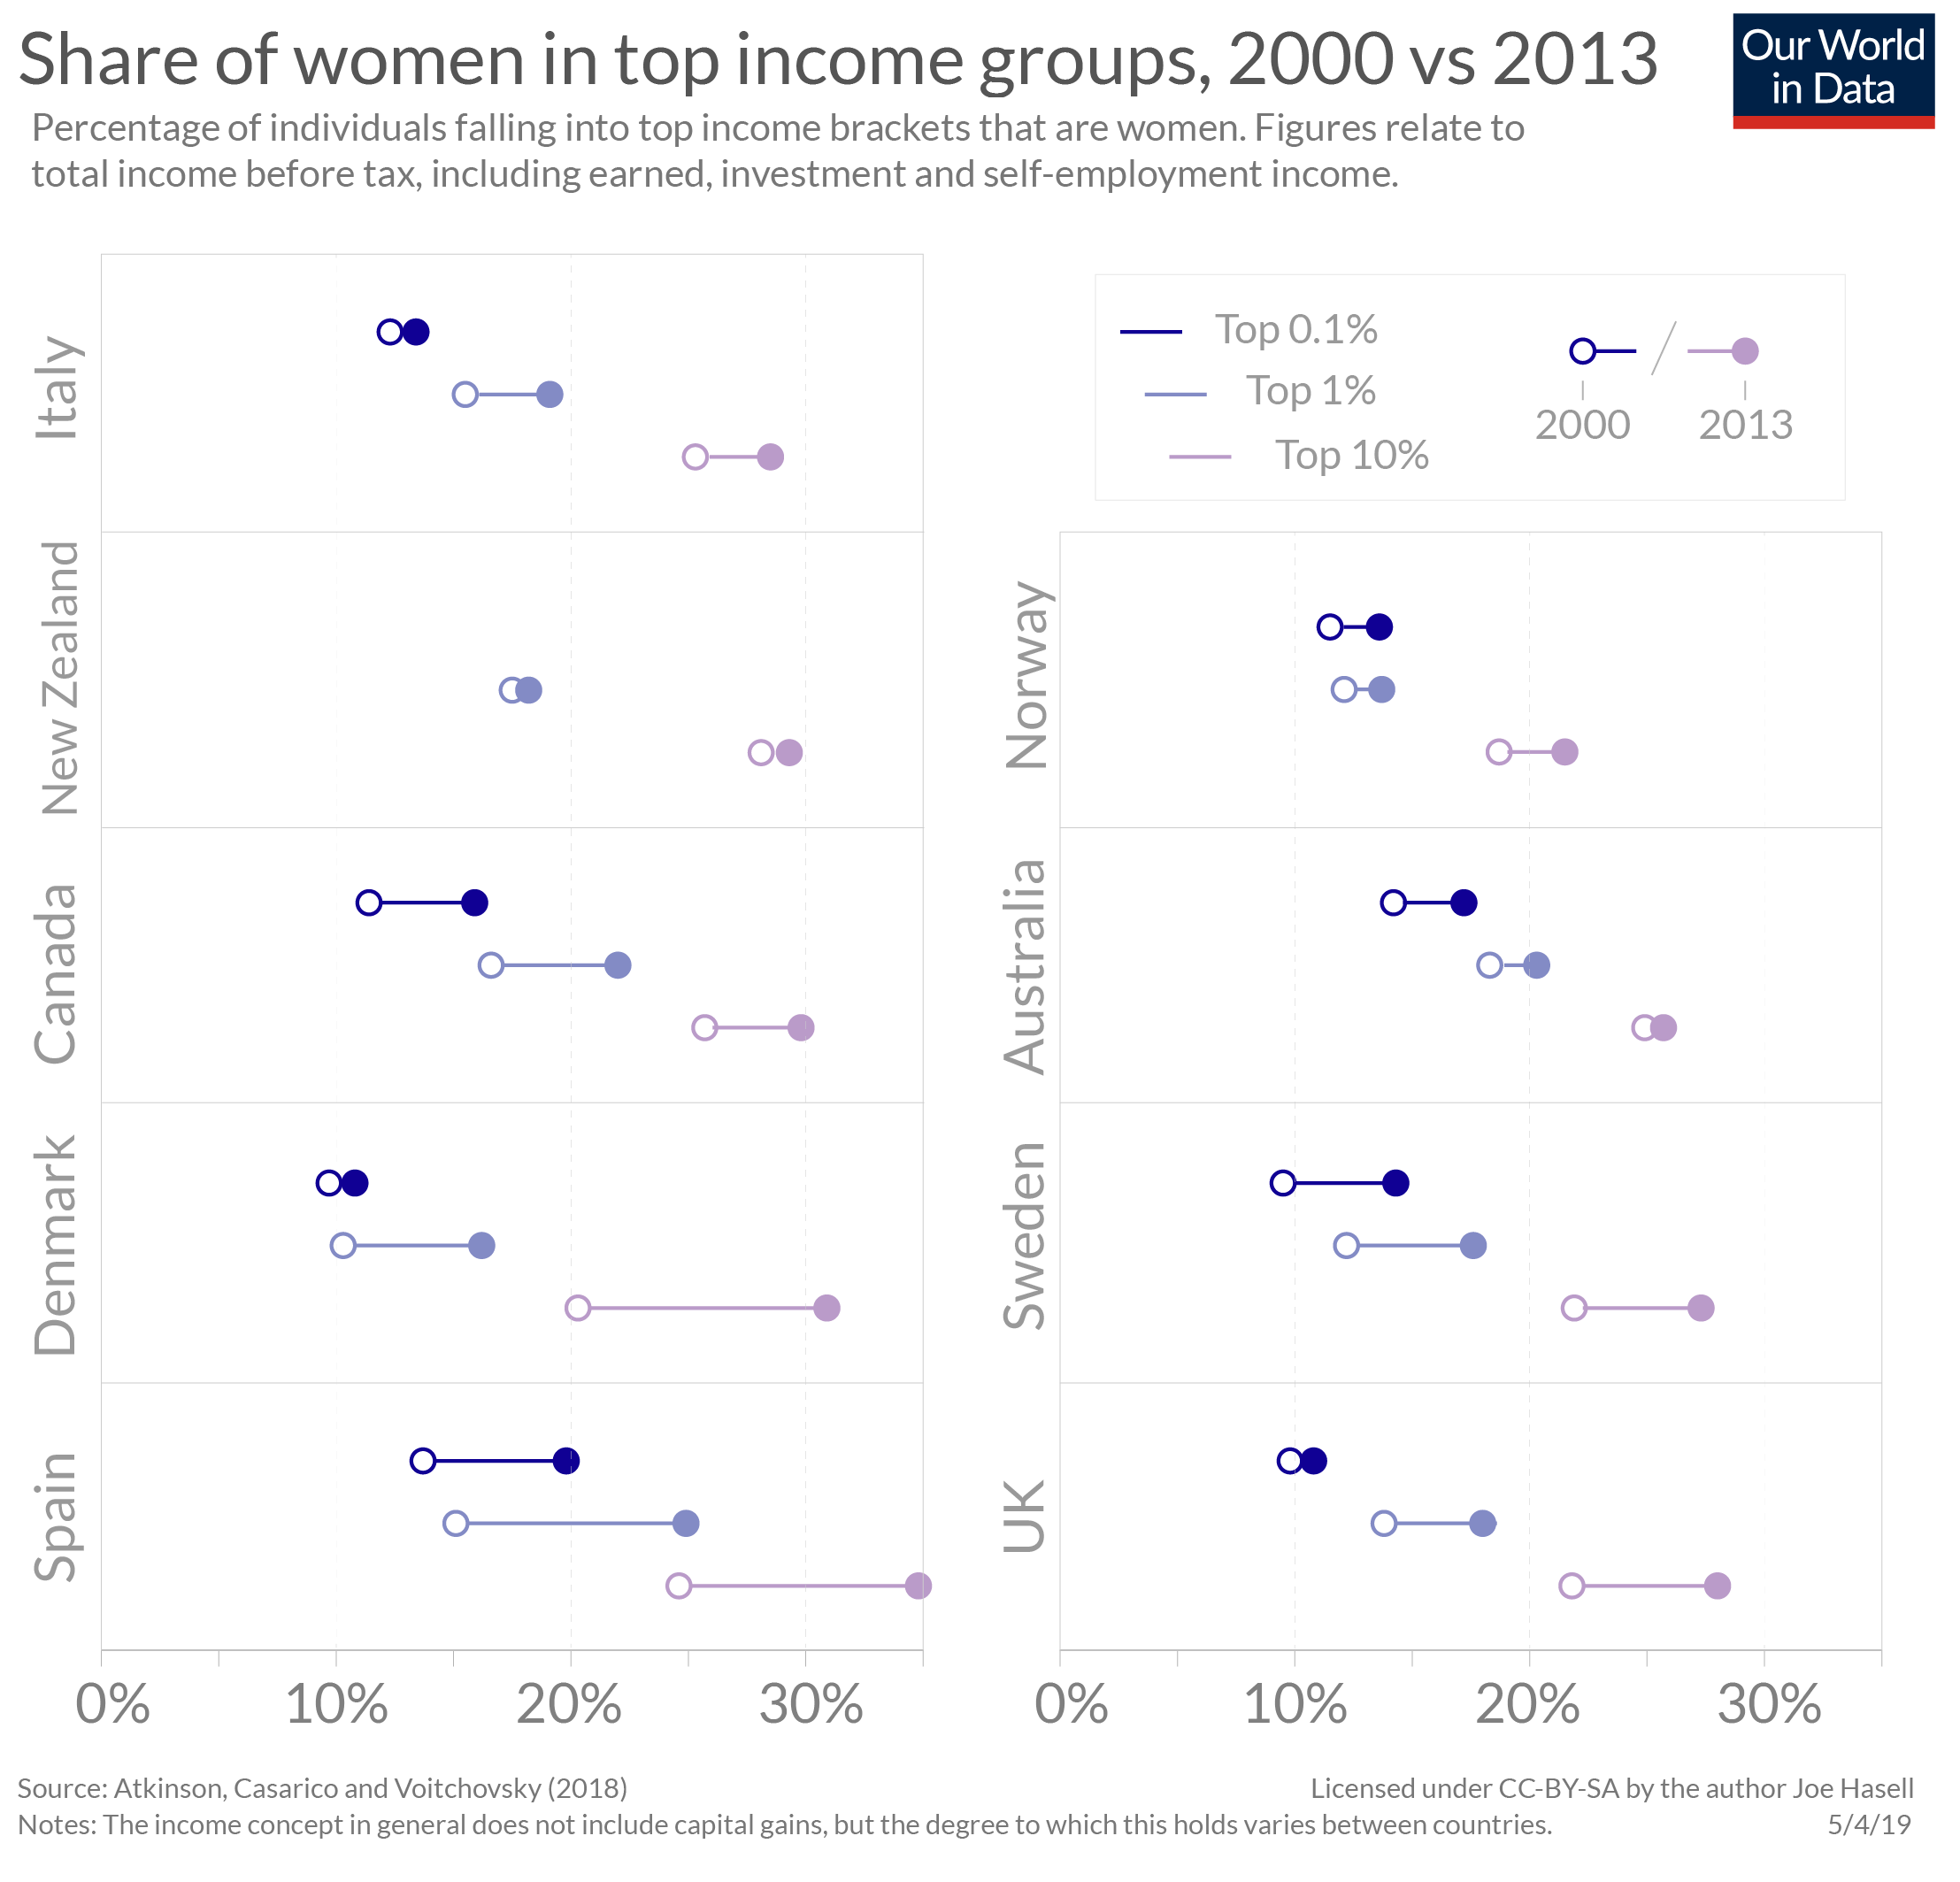 Economic inequality by gender - Our World in Data